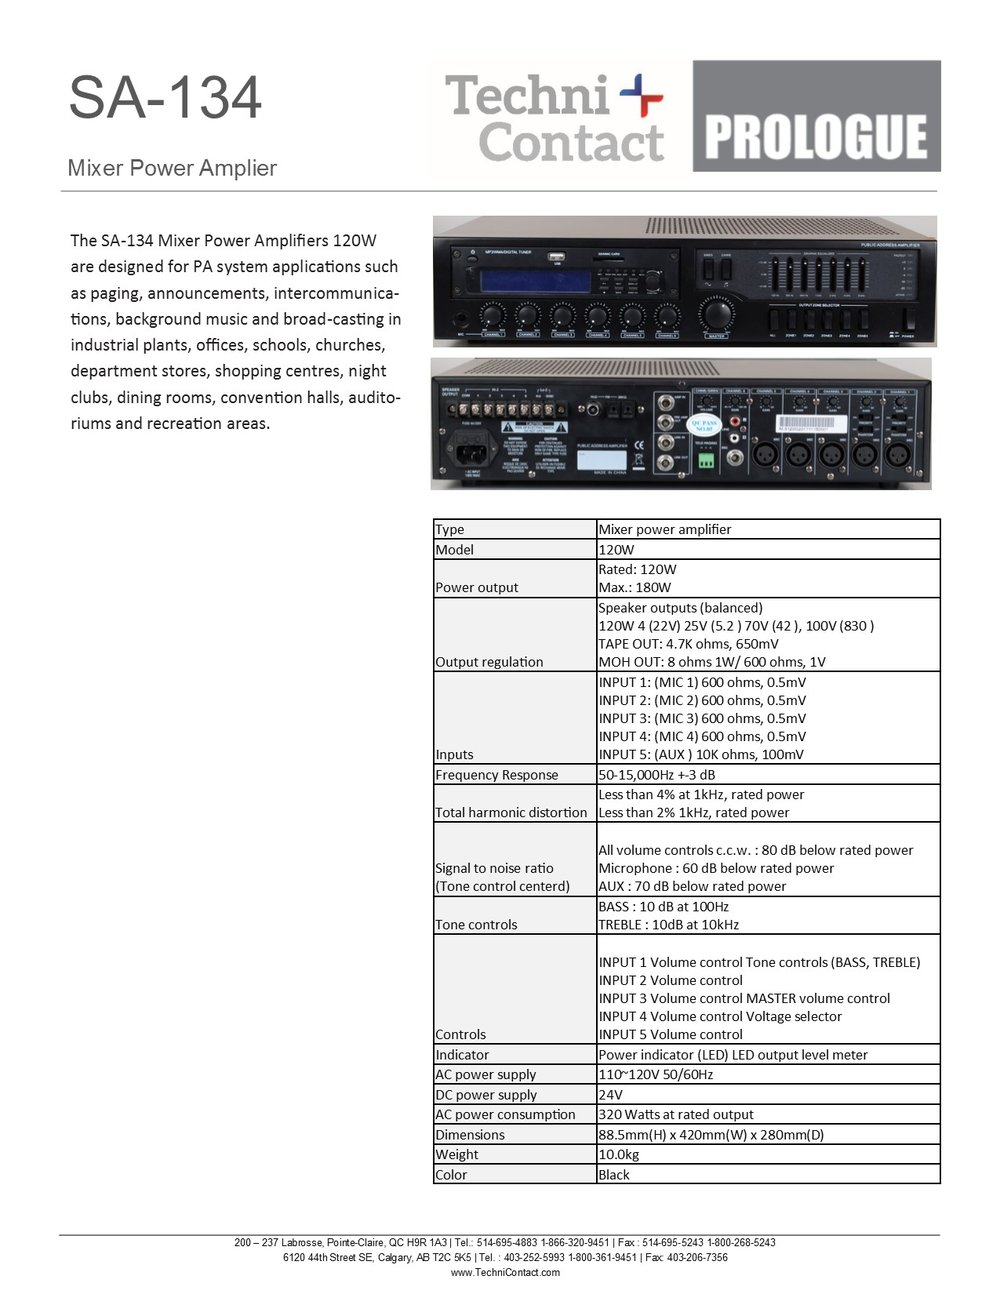 Prologue_SA-134_SPECS.jpg